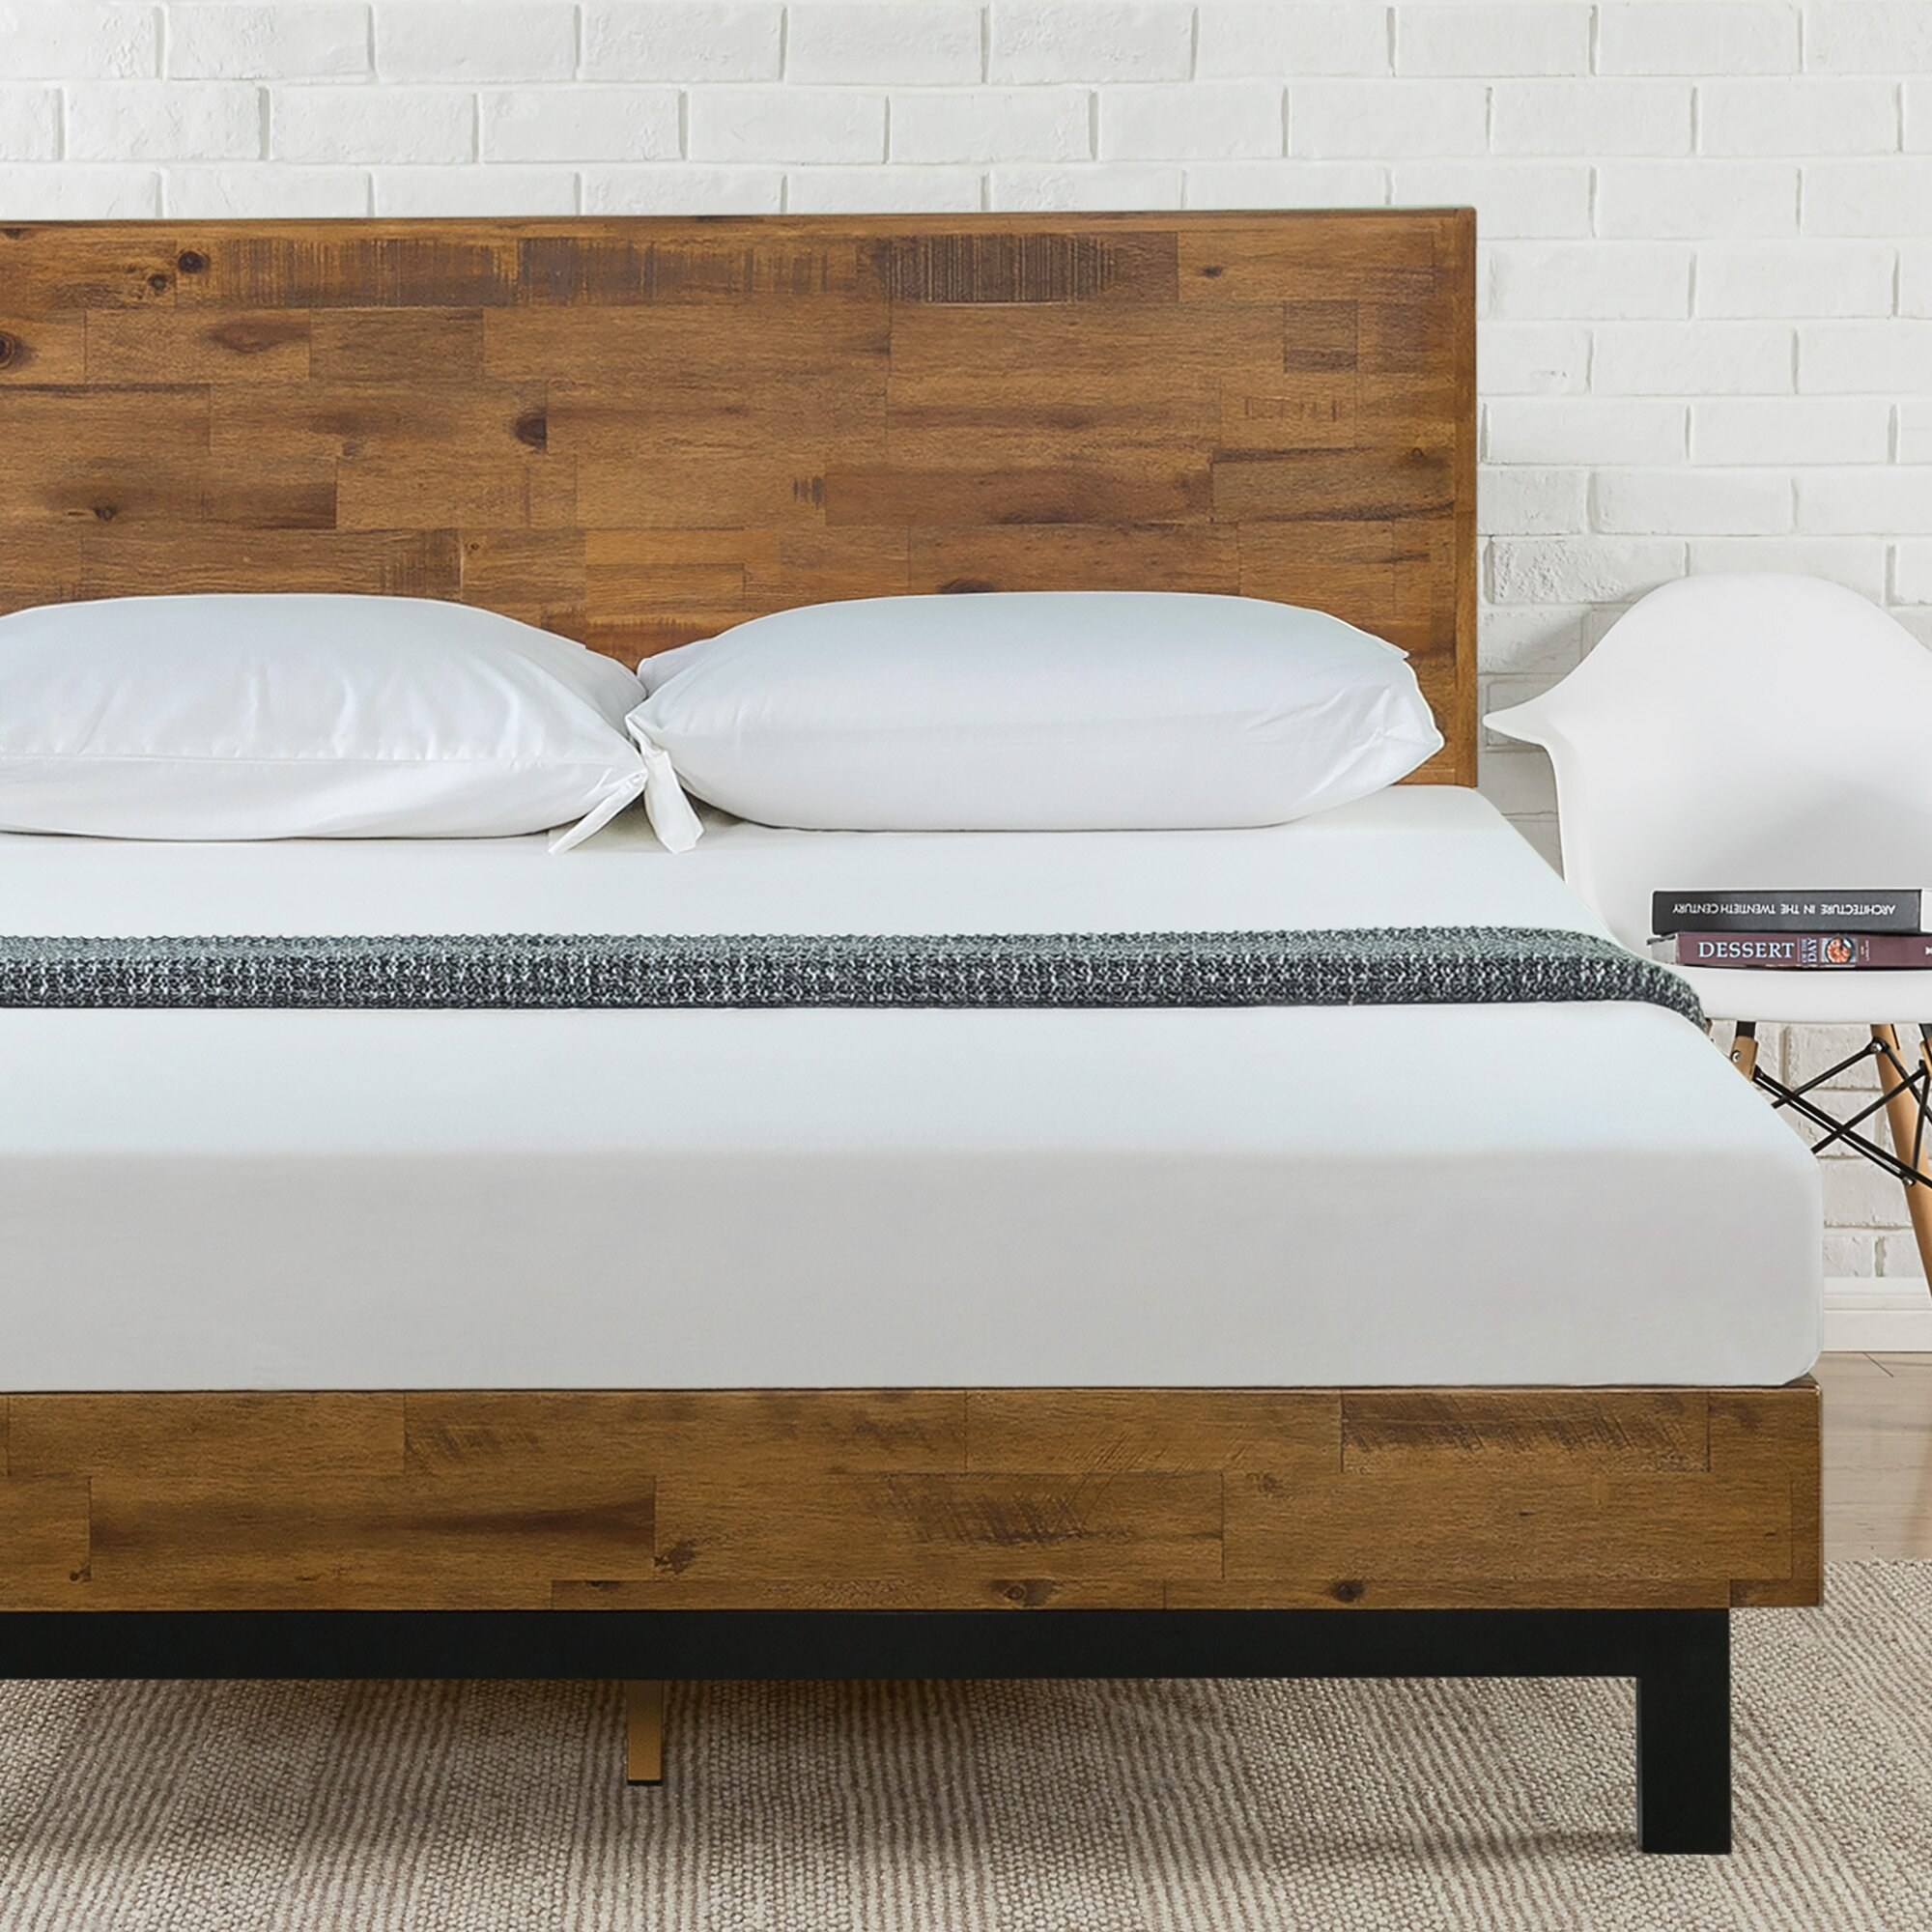 A wooden platform bed with a white mattress and white pillows